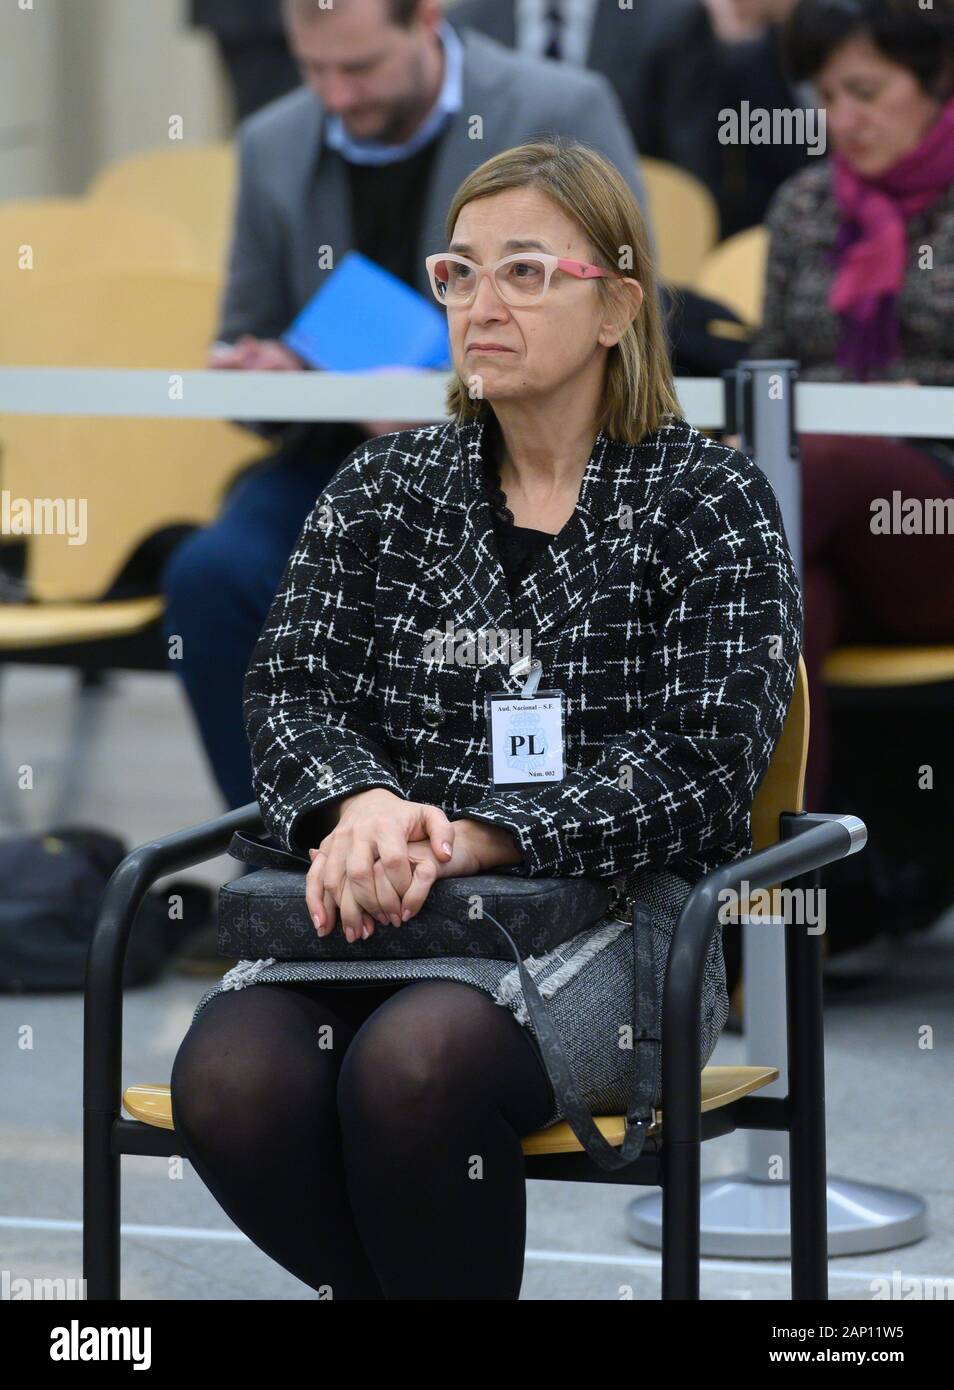 Madrid, Spain. 20th Jan, 2020. Mossos d'Esquadra's intendent, Teresa Laplana, sit on the dock for the first session of their trial for herinvolvement in the organization of Catalan pro-independent referendum held 01 October 2017, at Audiencia Nacional Court, in Madrid, Spain, 20 January 2020. Three of the defendants are accused of rebellion and Teresa Laplana is accused of sedition for their involvement in the so-called Catalan 'proces'. Credit: Fernando Villar POOL/EFE/Alamy Live News Stock Photo